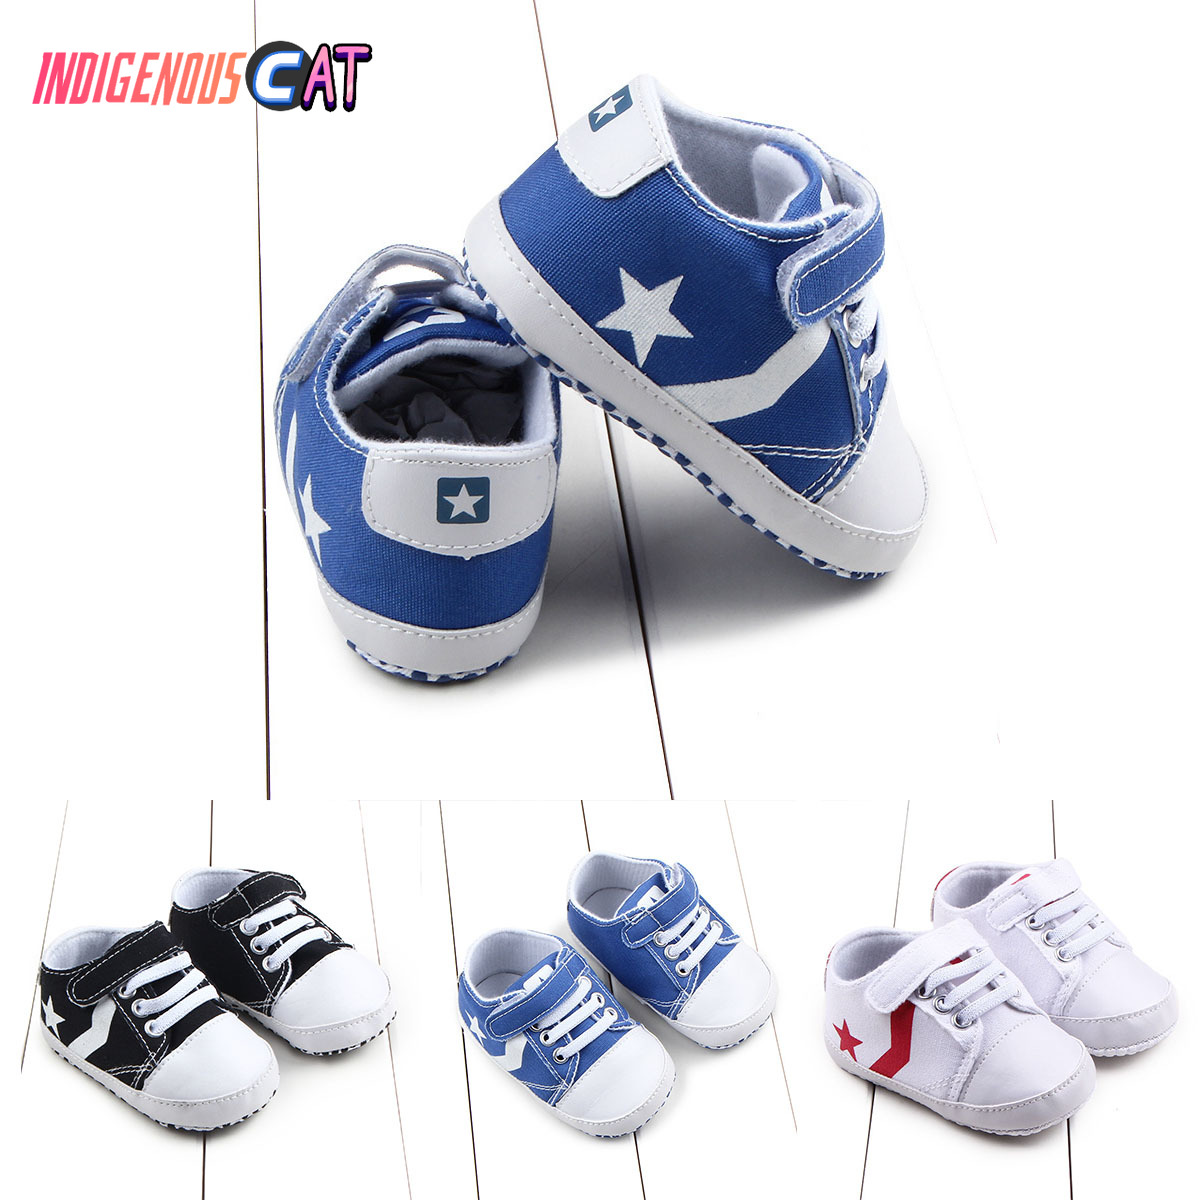 2019 New Spring Fashion Toddler First Walker 0-1 Years Old Baby Shoes Boys Shoes Sneaker Prewalker Canvas Sneaker Kawaii Shoes